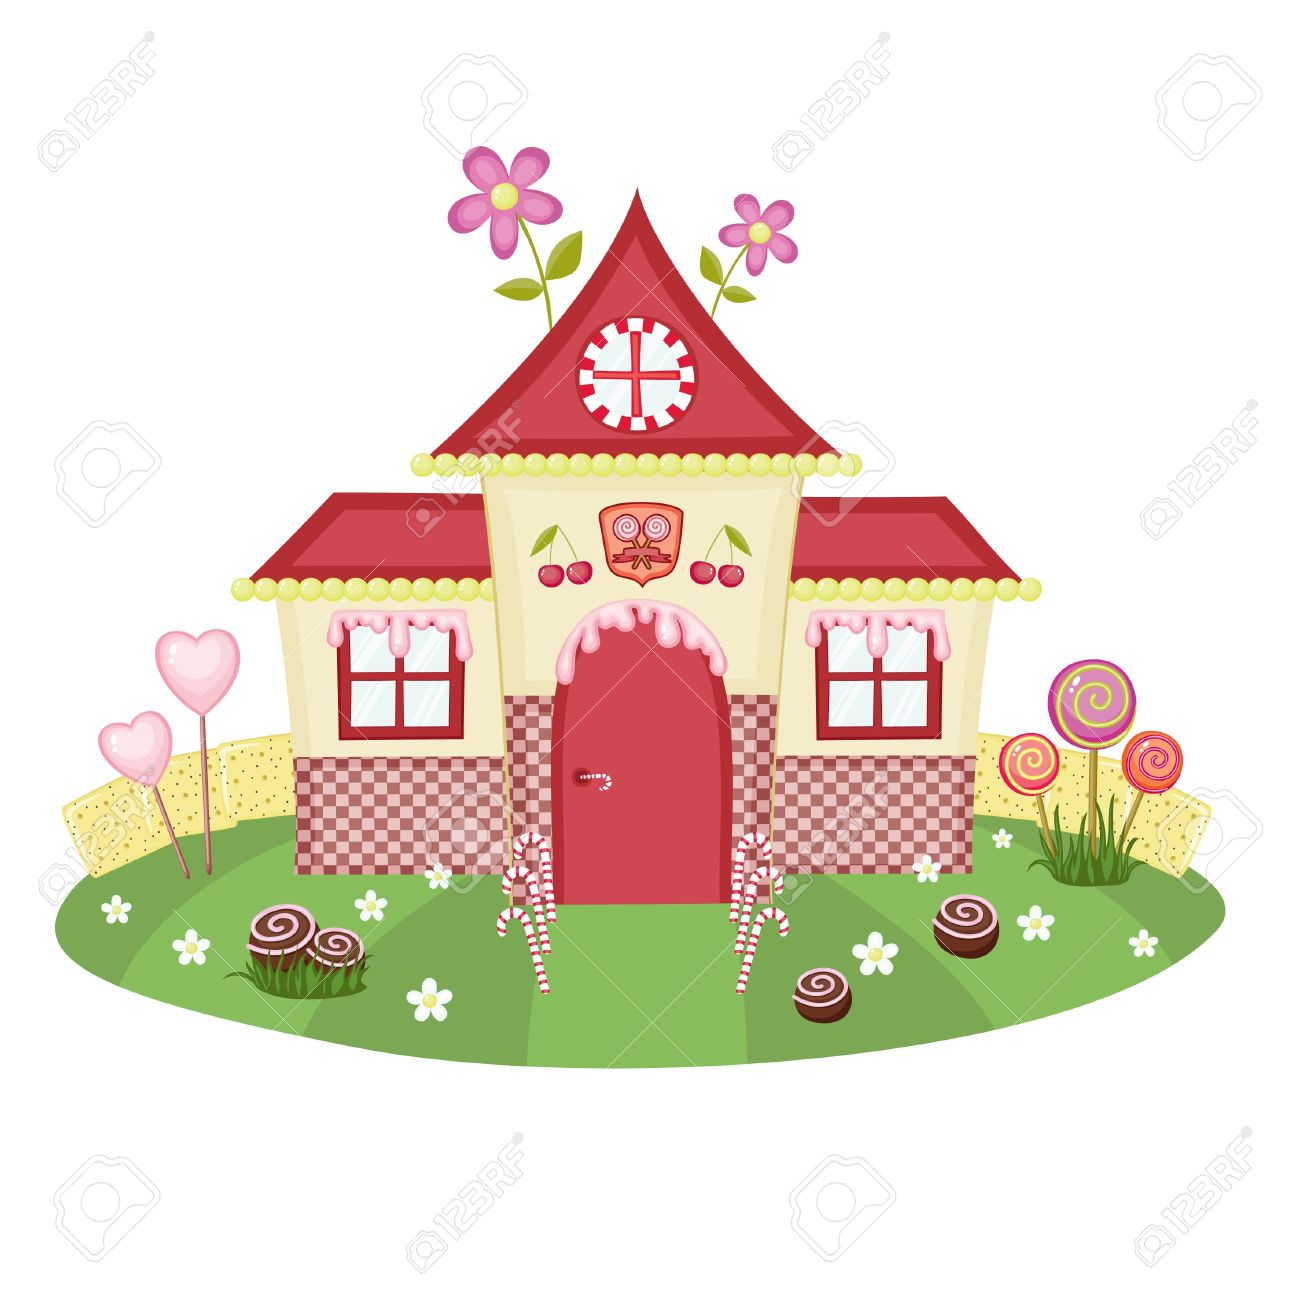 Colourful houses clipart #11